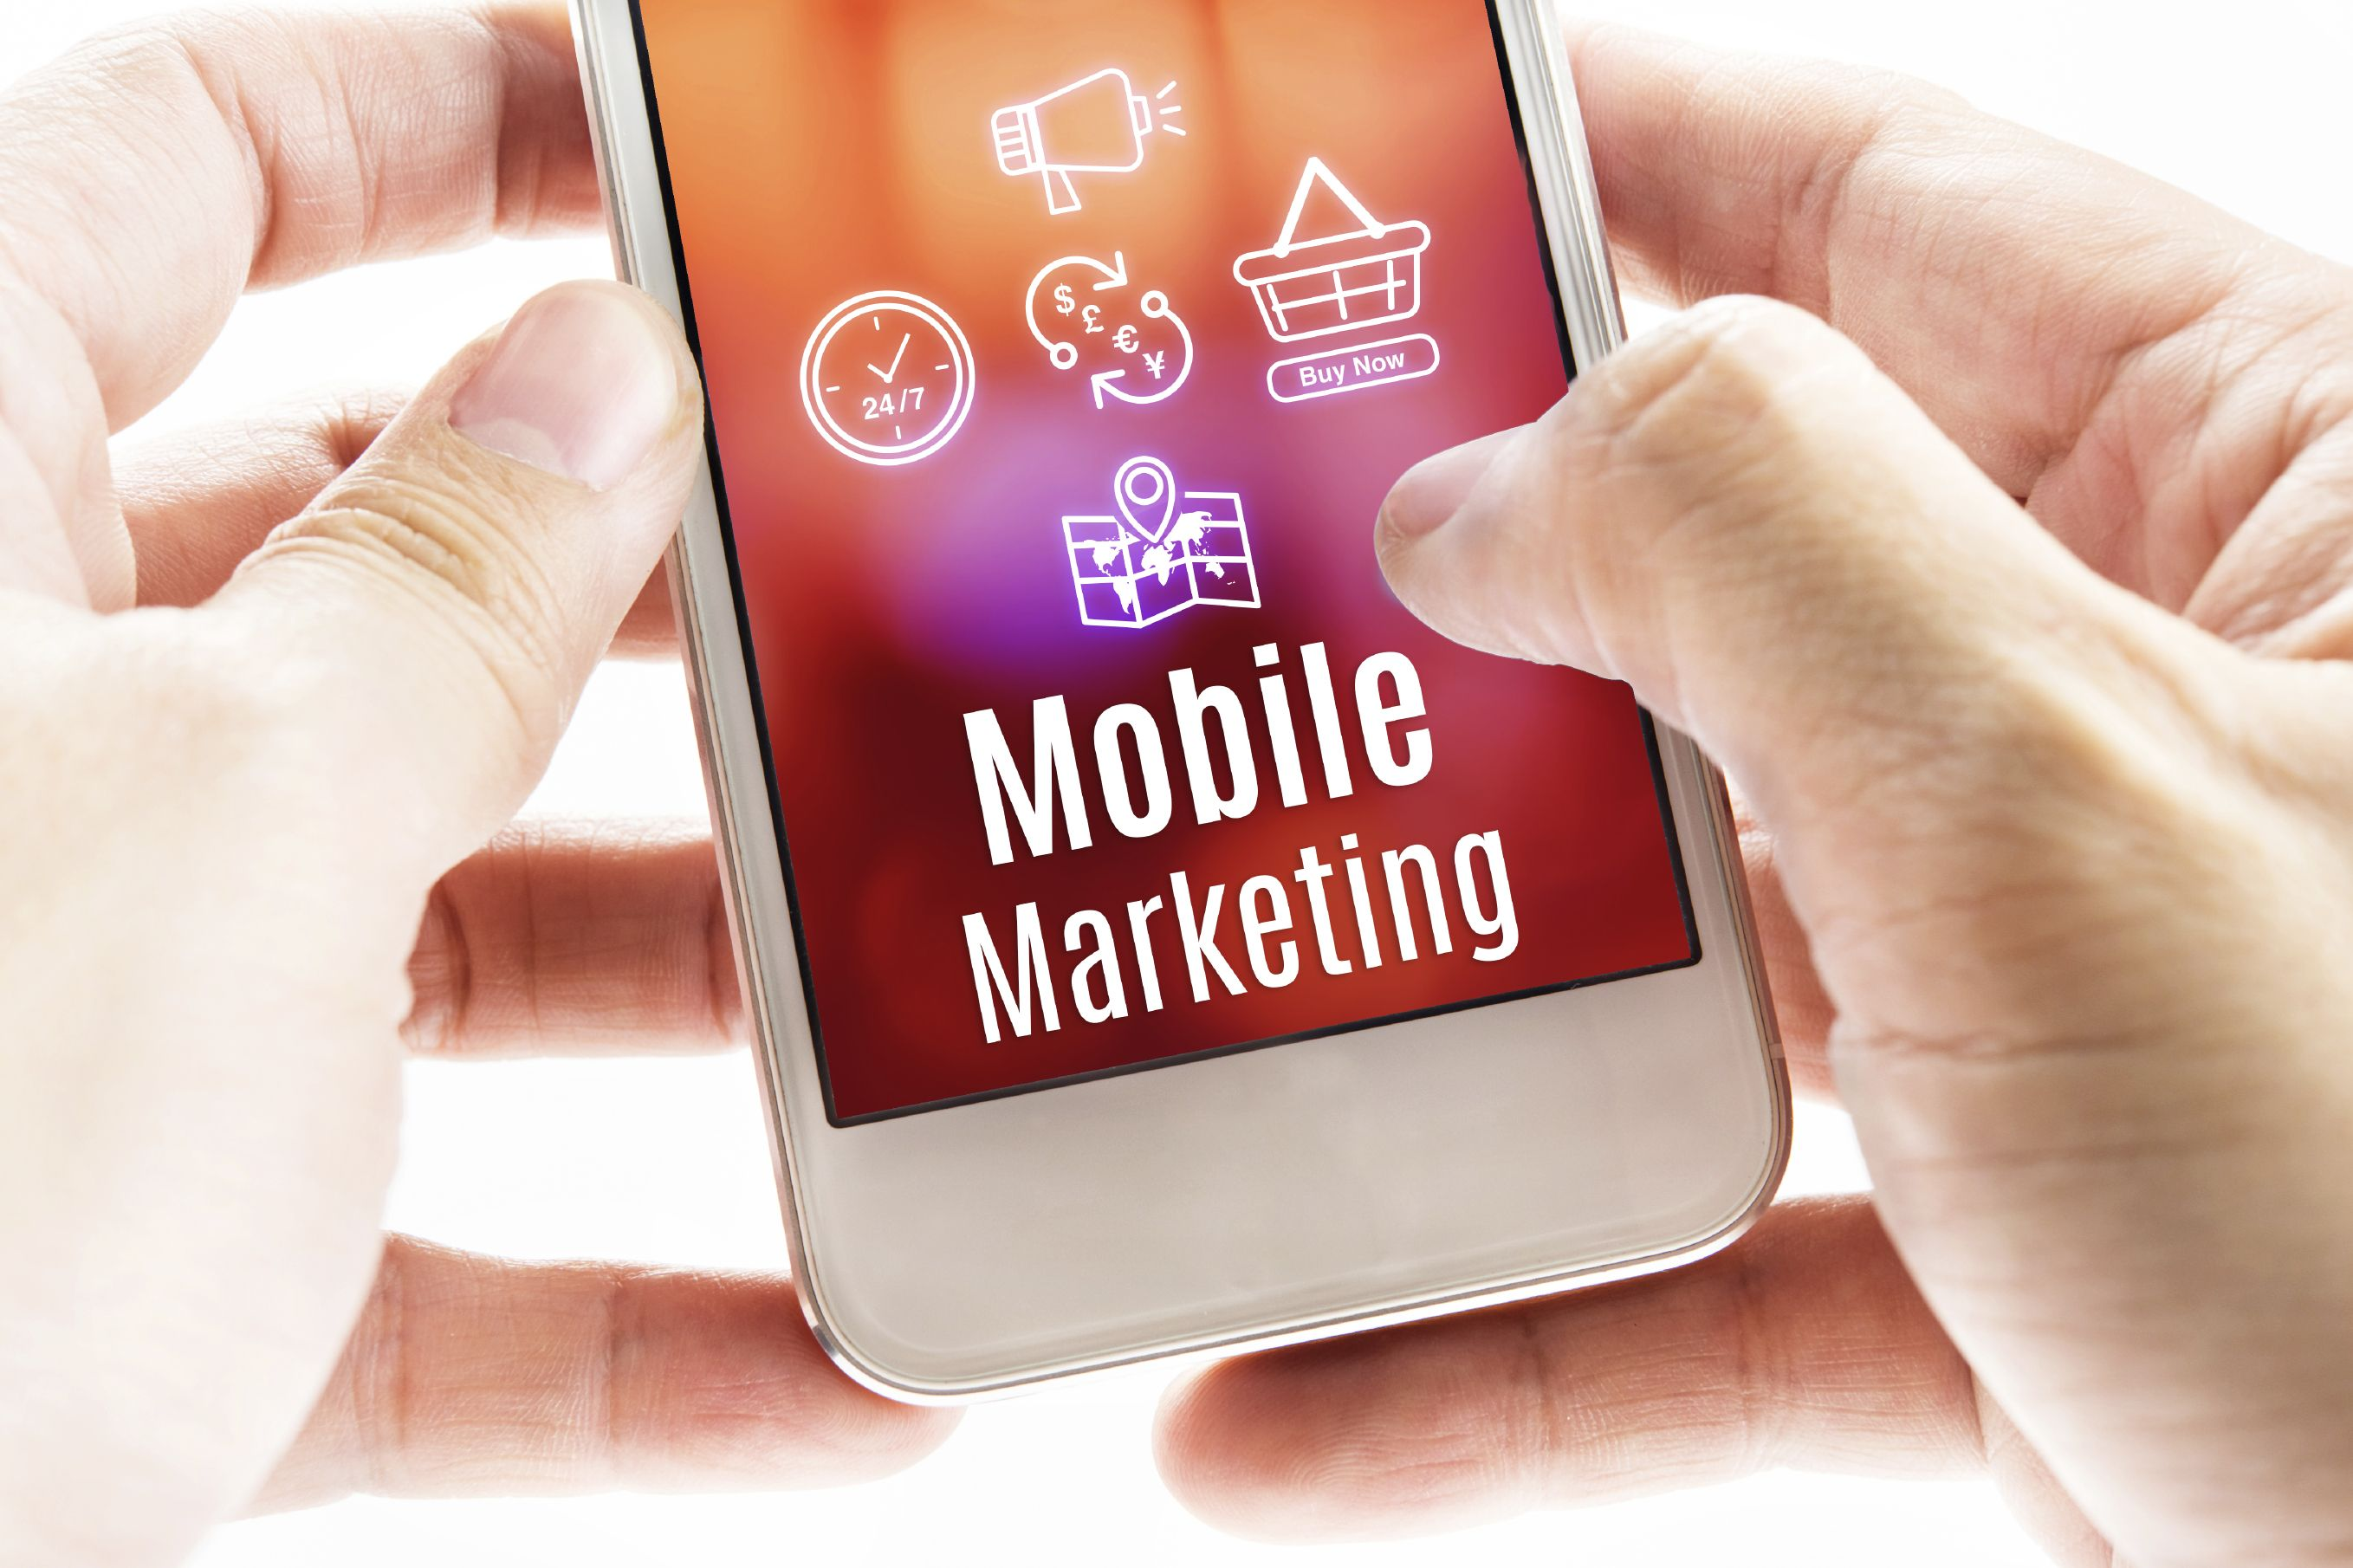 Our Company is the best in Mobile Marketing Services.